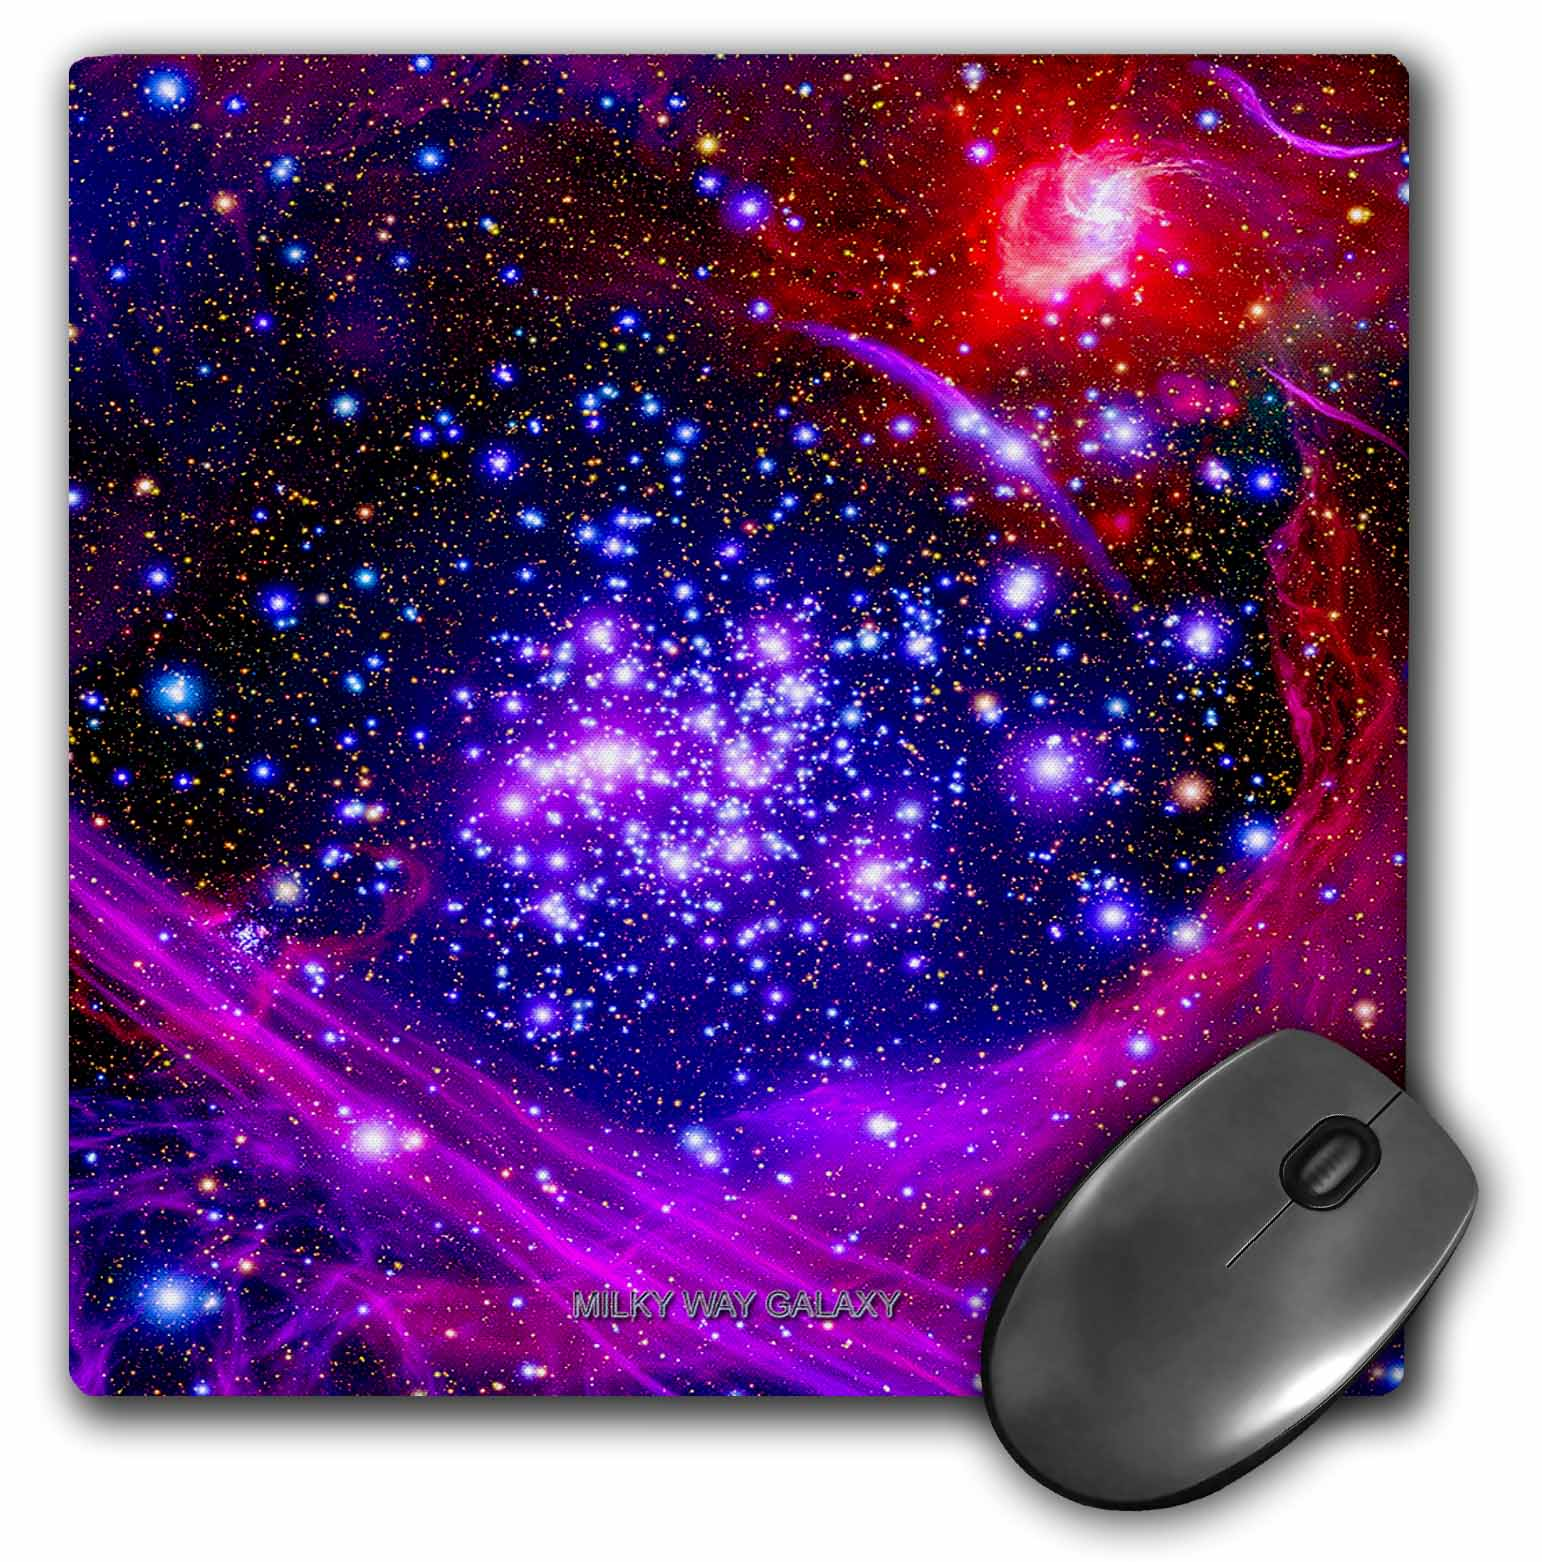 3dRose Galaxy and Nebula - Milky Way Galaxy, Mouse Pad, 8 by 8 inches